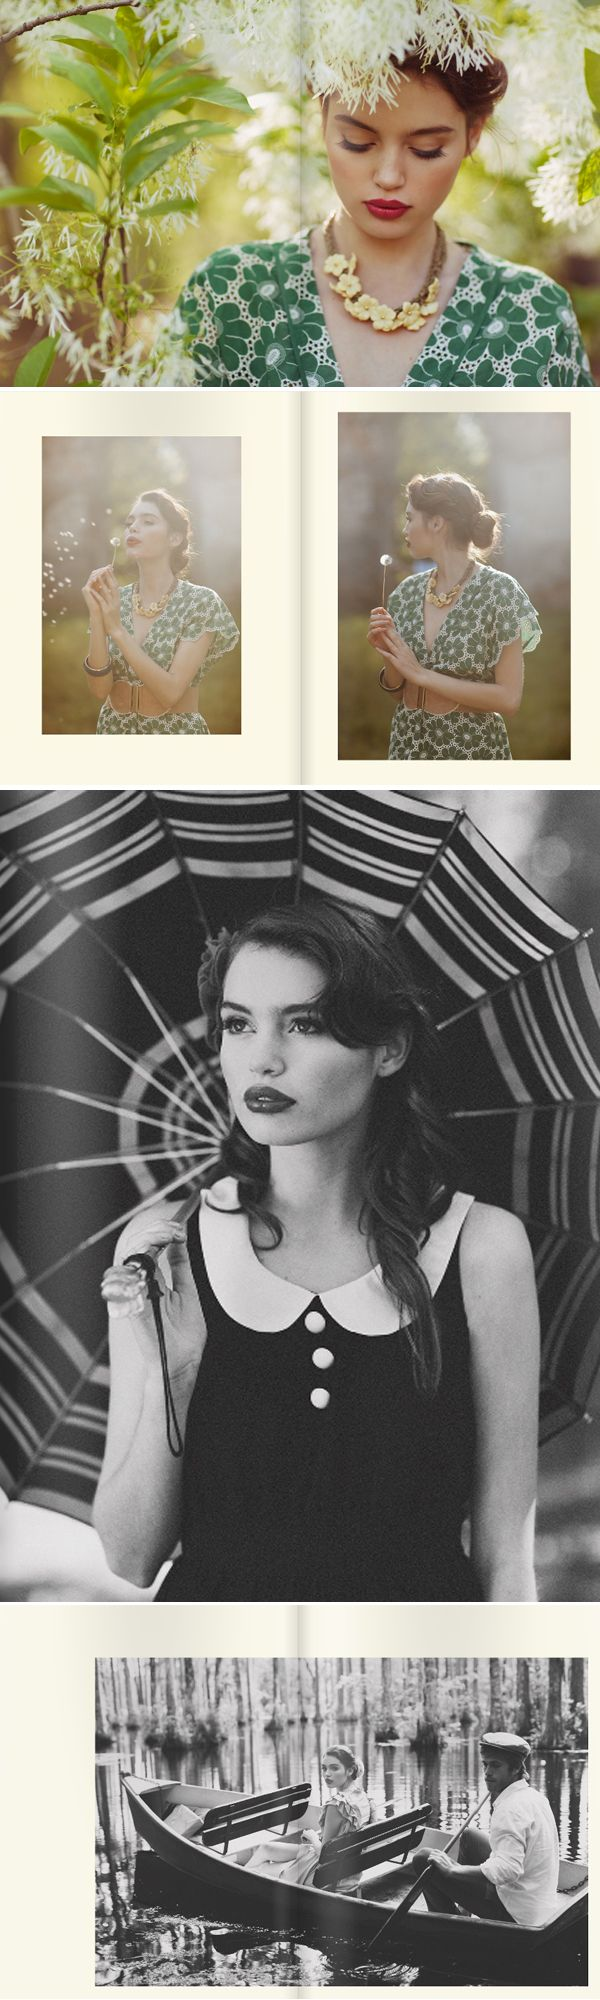 I love how in color and in black and white the photograph still portrays a gentle spring theme. She looks like Geena Davis